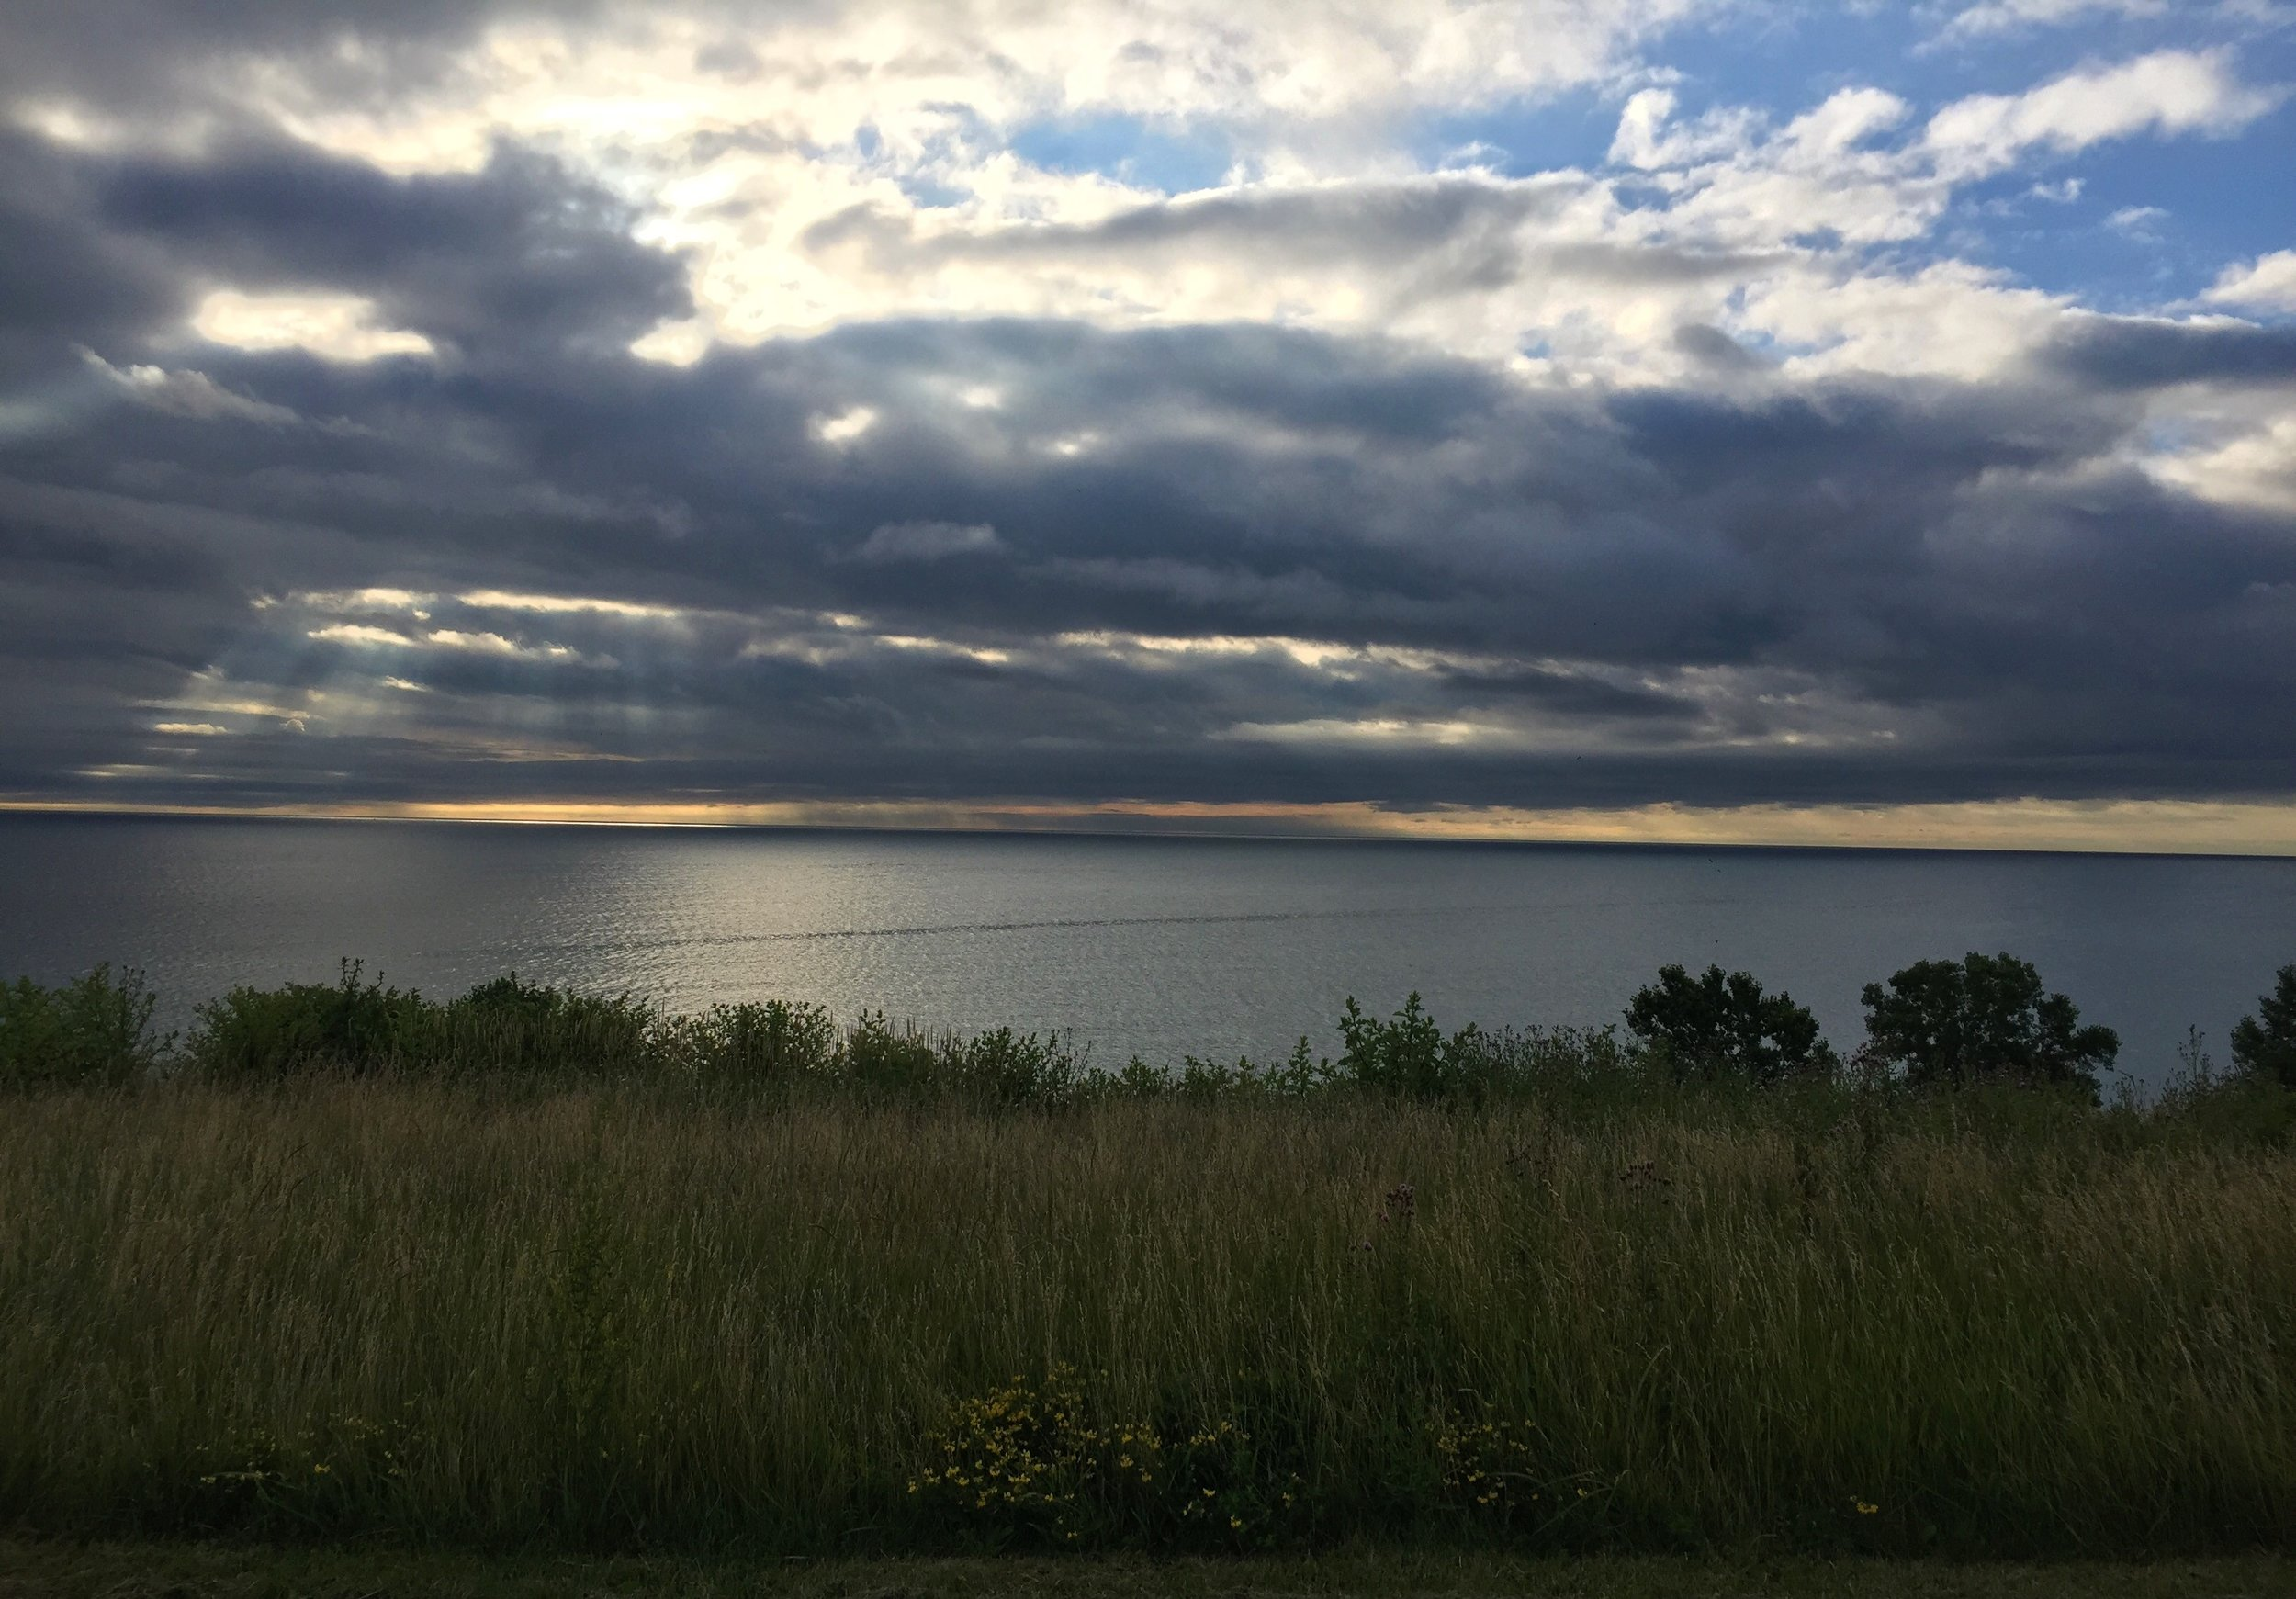 HERE'S A BEAUTIFUL PICTURE OF LAKE MICHIGAN FOR YOUR TROUBLE.